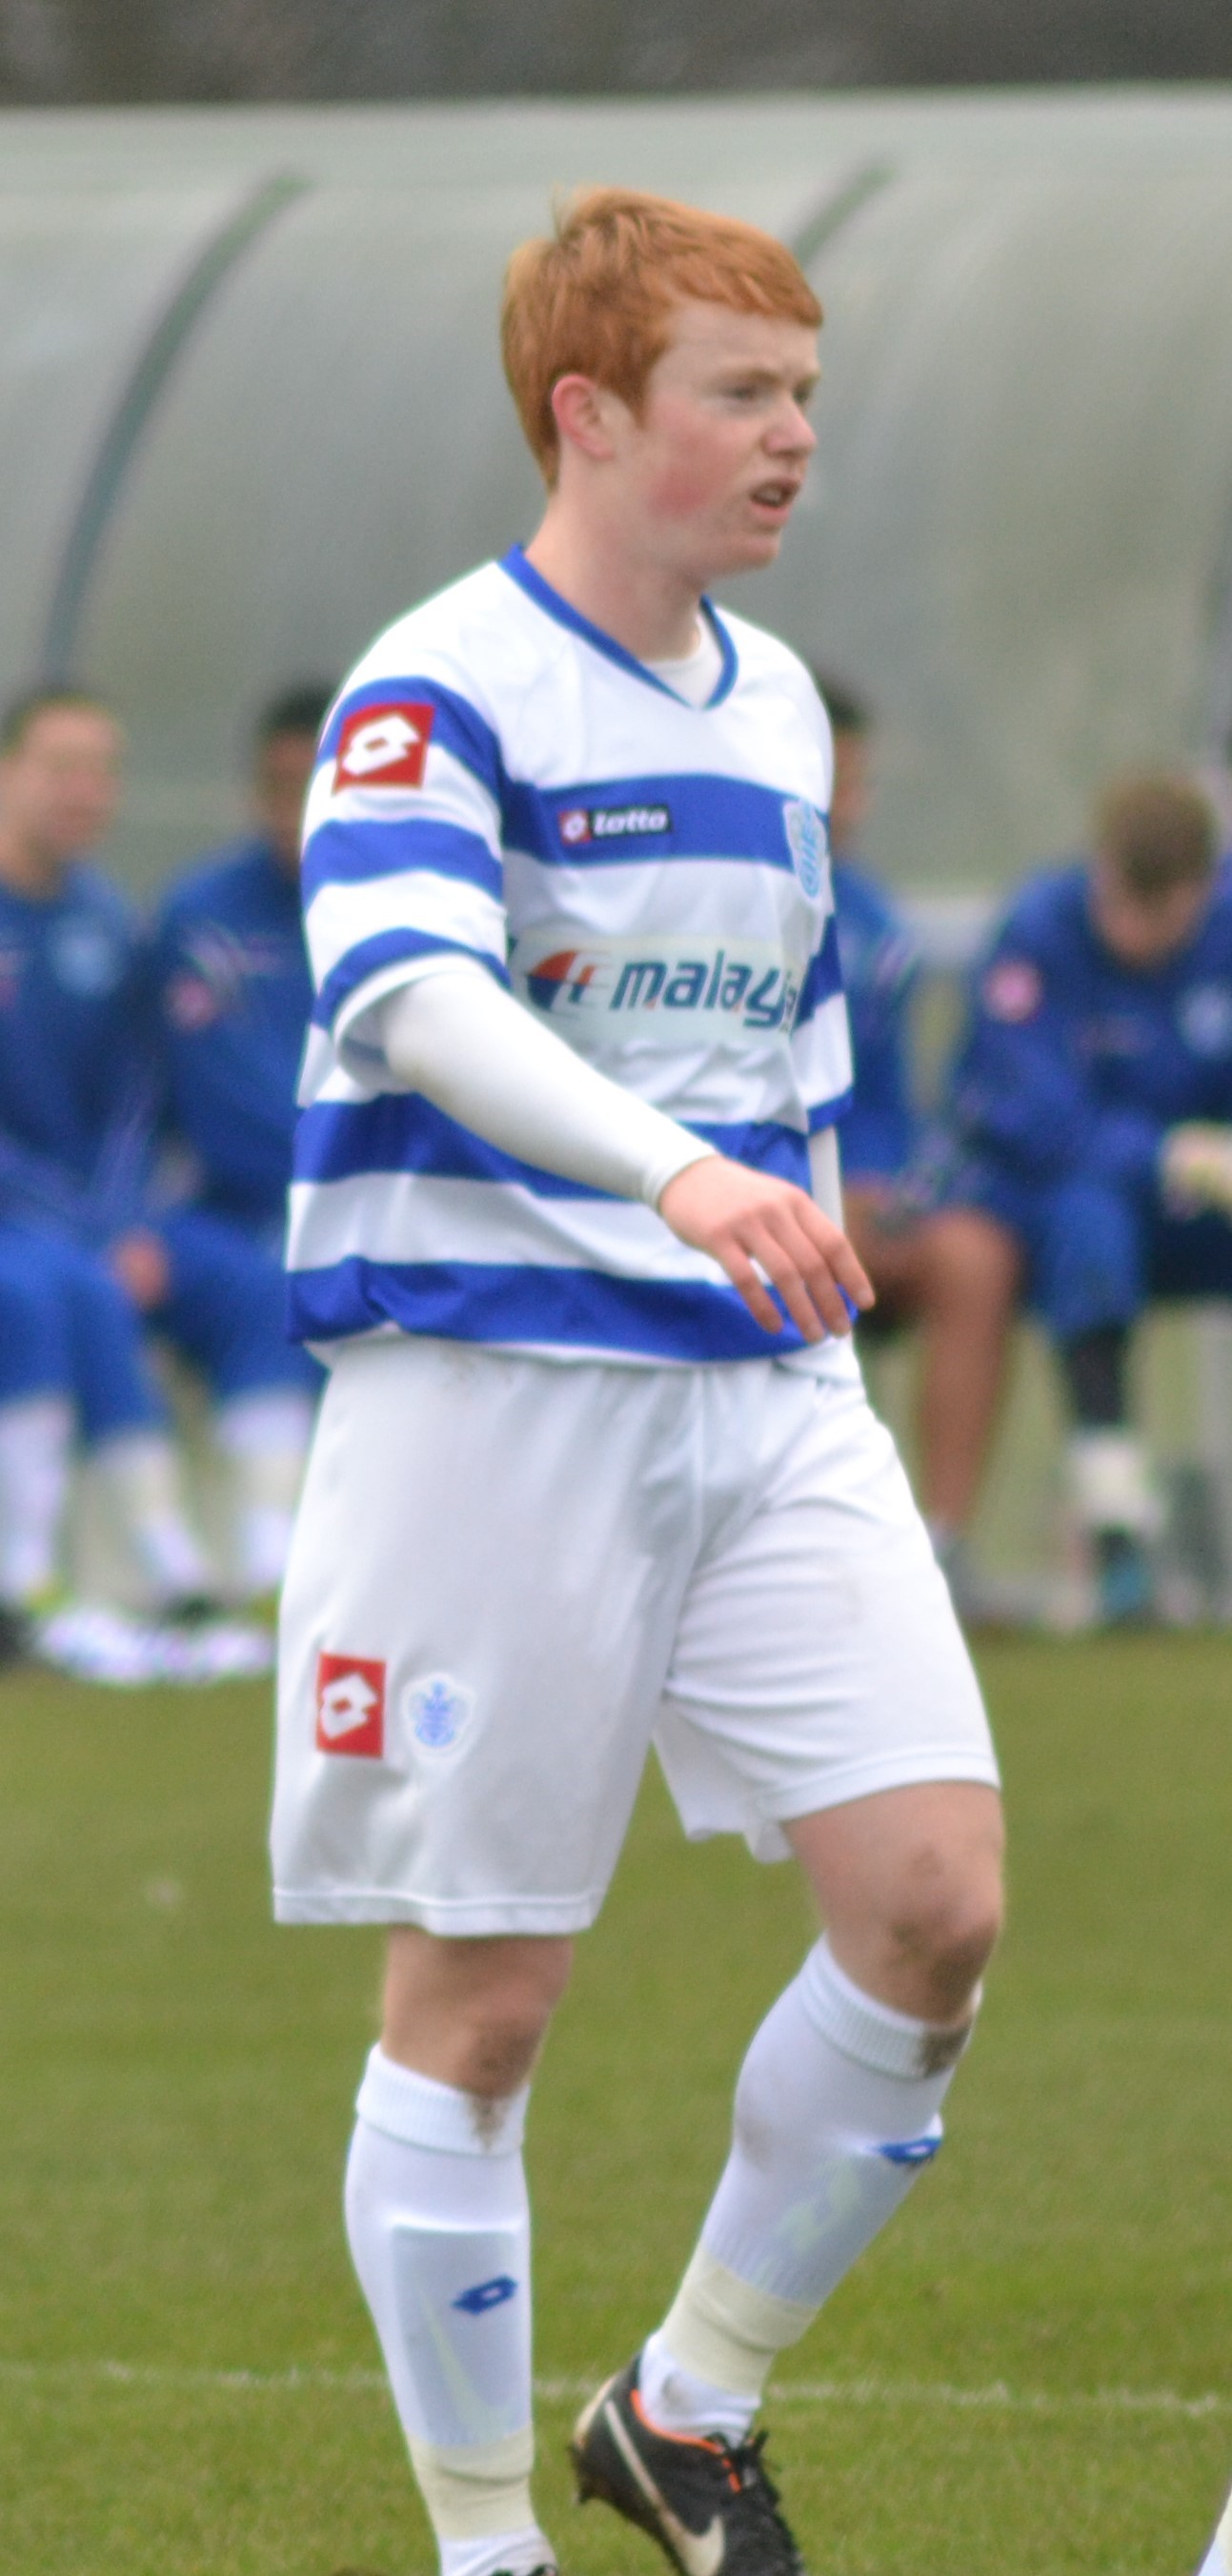 Jordan Walker playing football for QPR